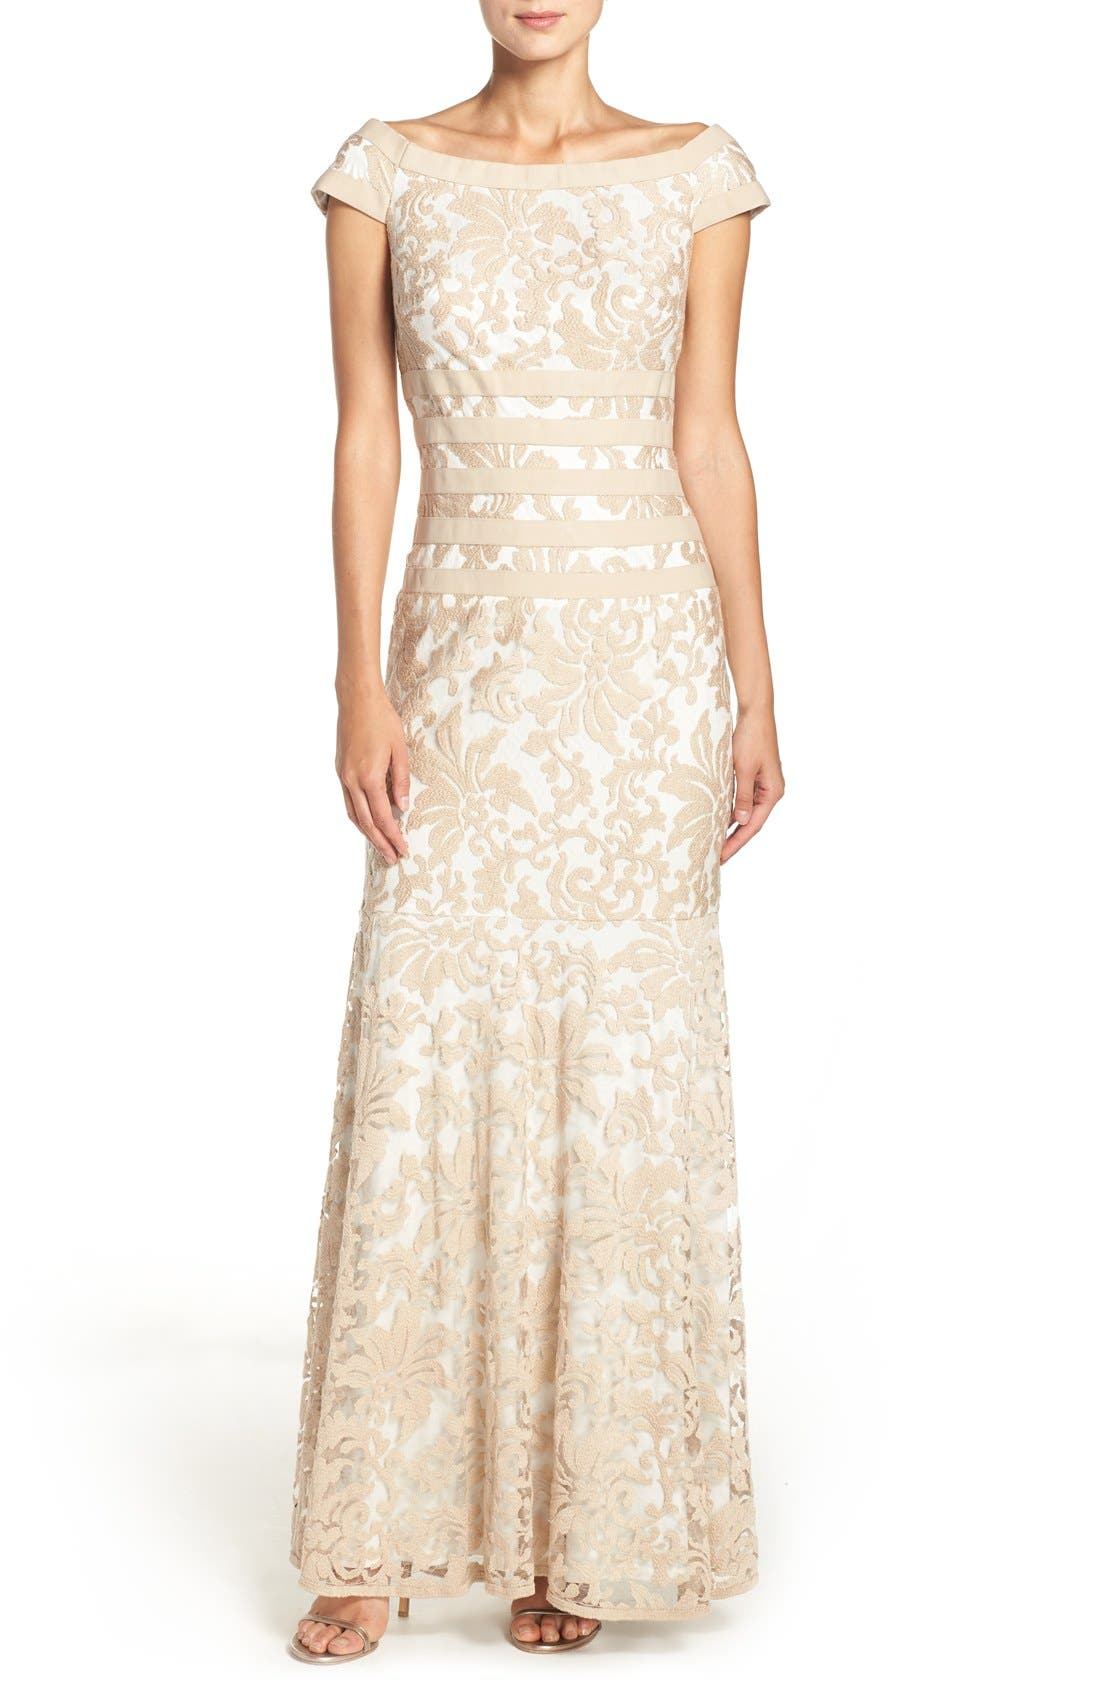 Alternate Image 1 Selected - Tadashi Shoji Textured Lace Mermaid Gown (Regular & Petite)